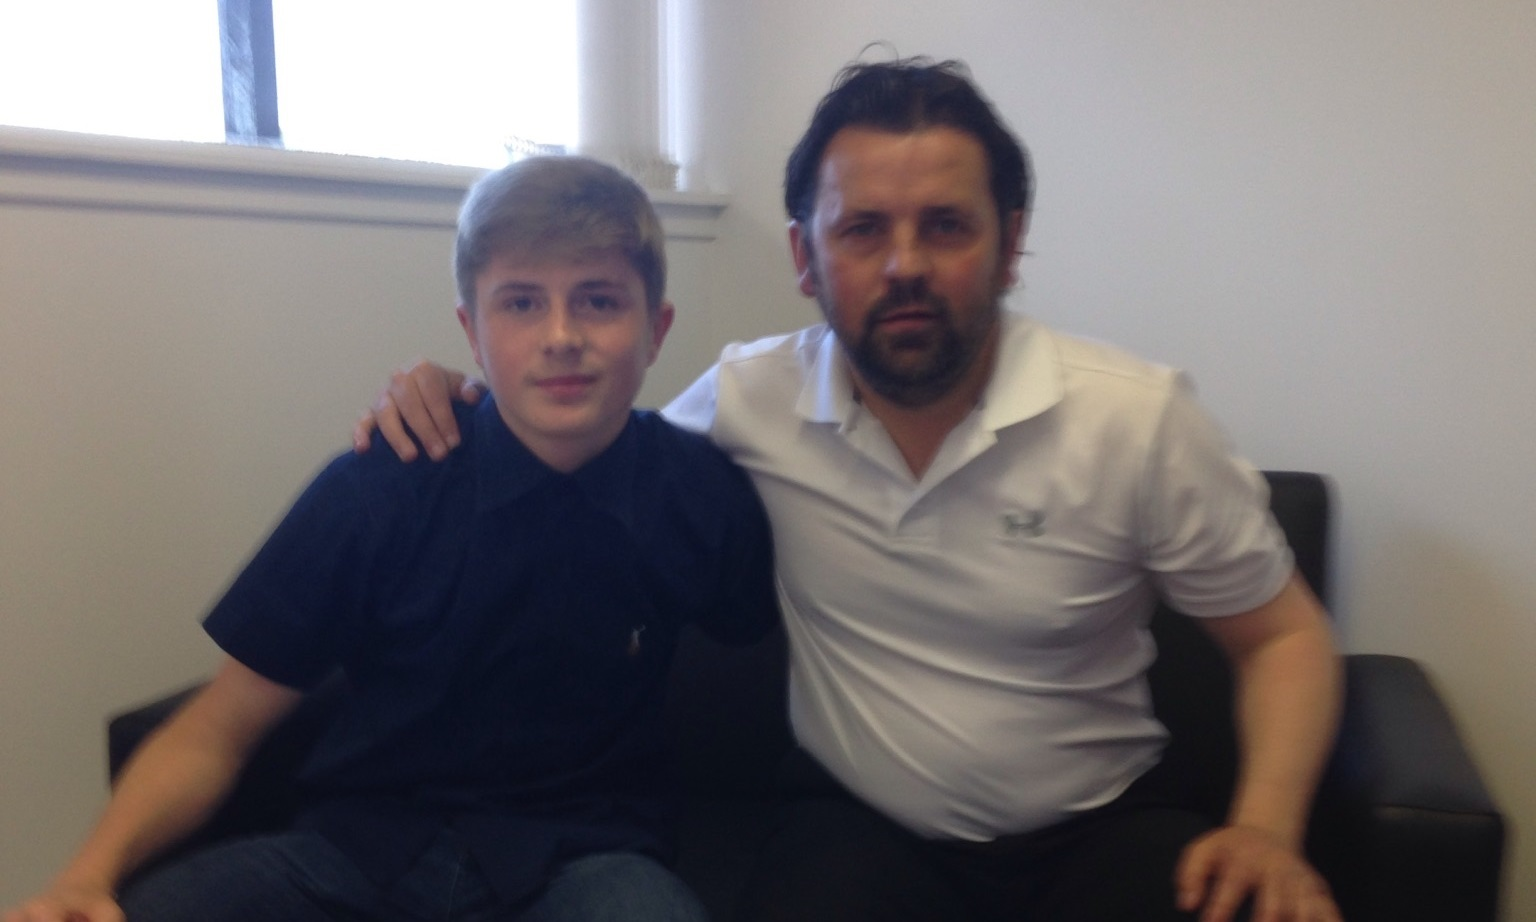 Connor Coupe, who suffers from an eye condition, signs a contract with Dundee FC manager Paul Hartley.